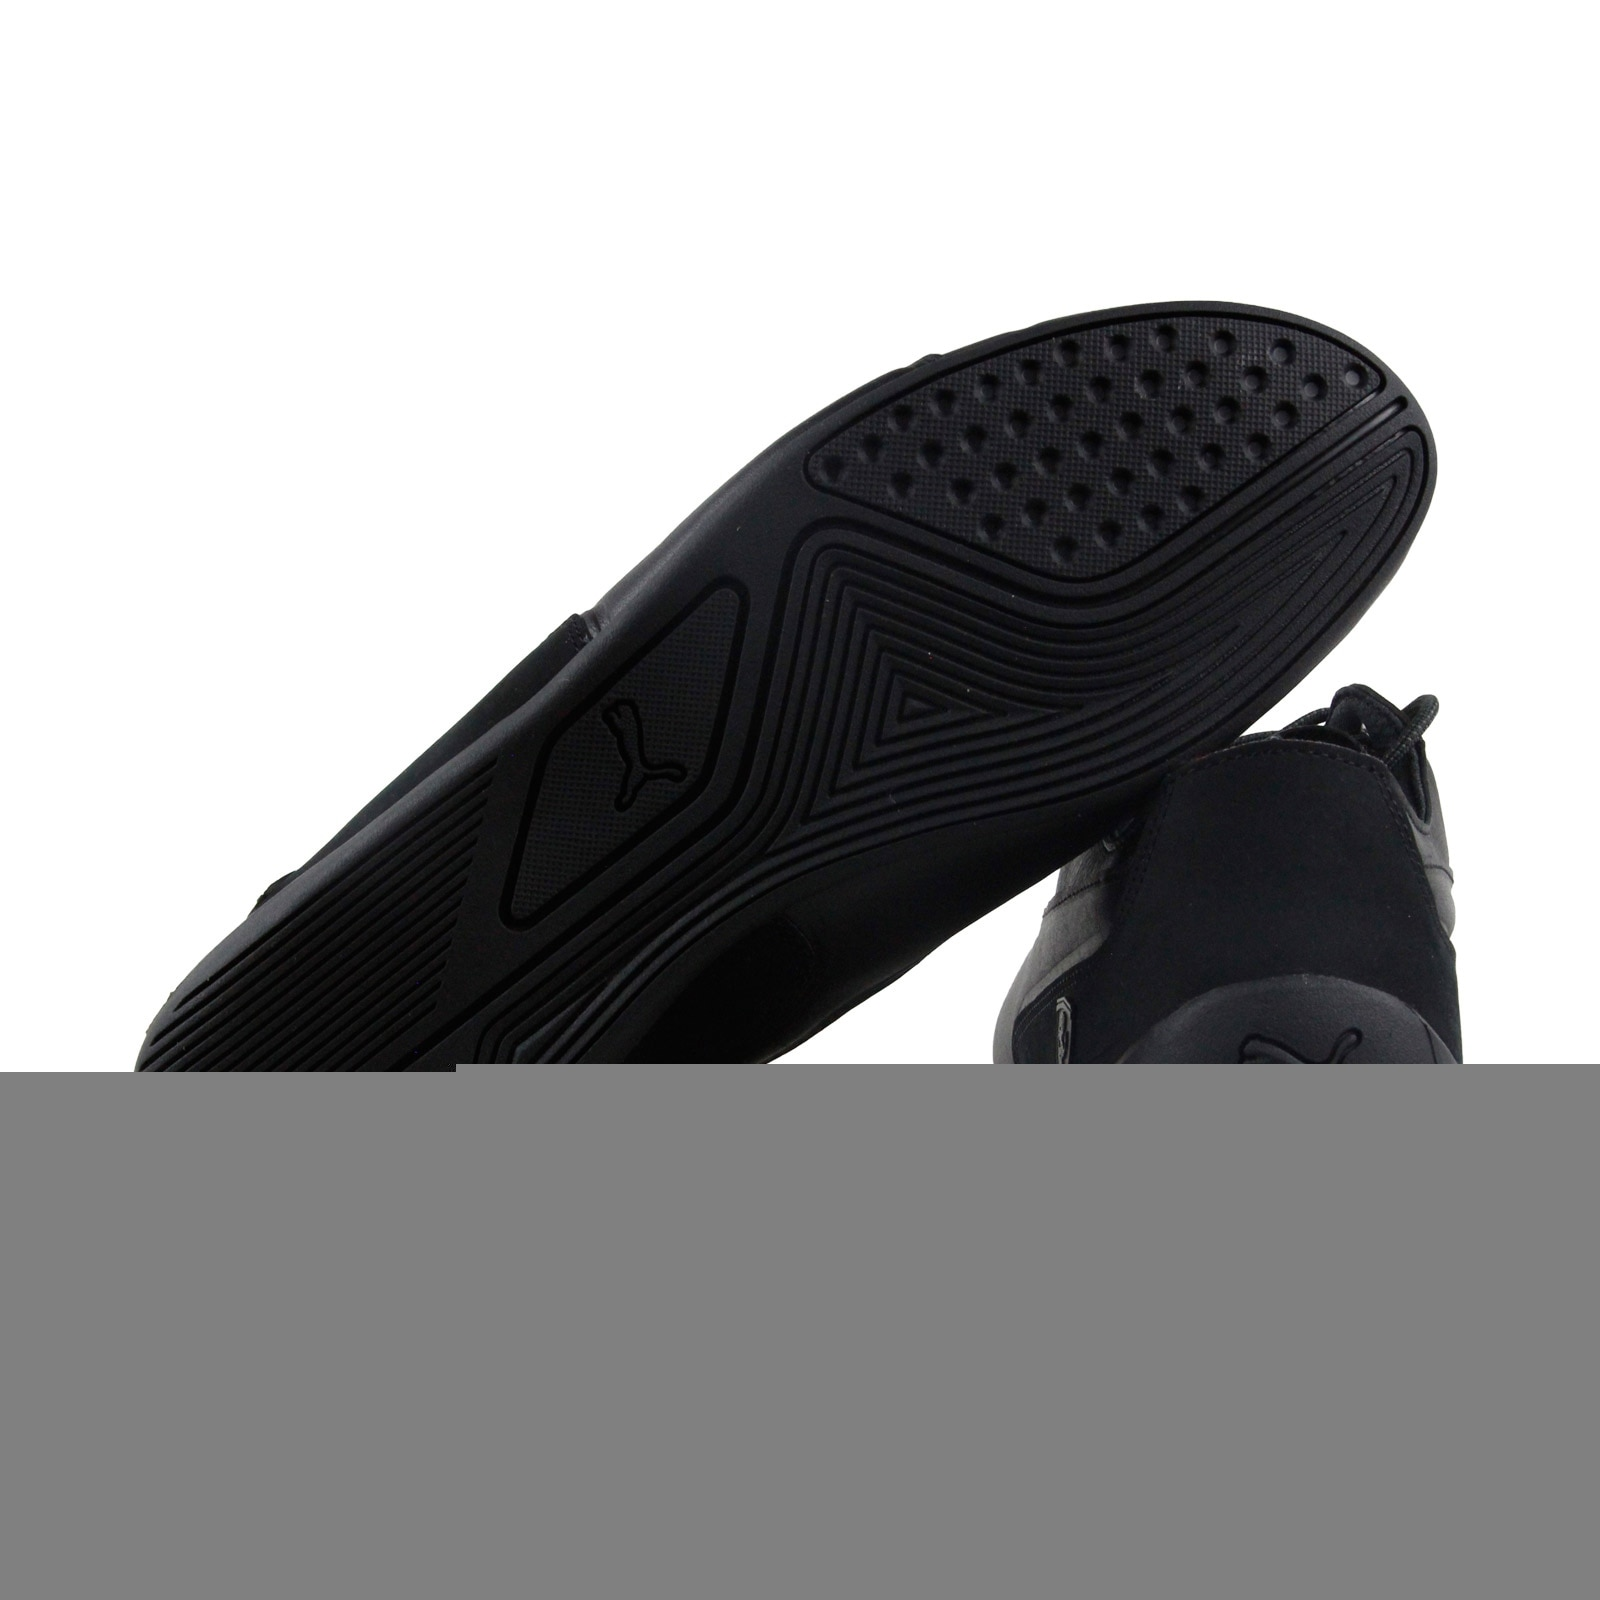 e2d4fddd26d Shop Puma Sf Drift Cat 7 Ls Mens Black Leather Lace up Sneakers Shoes -  Free Shipping Today - Overstock - 21730231